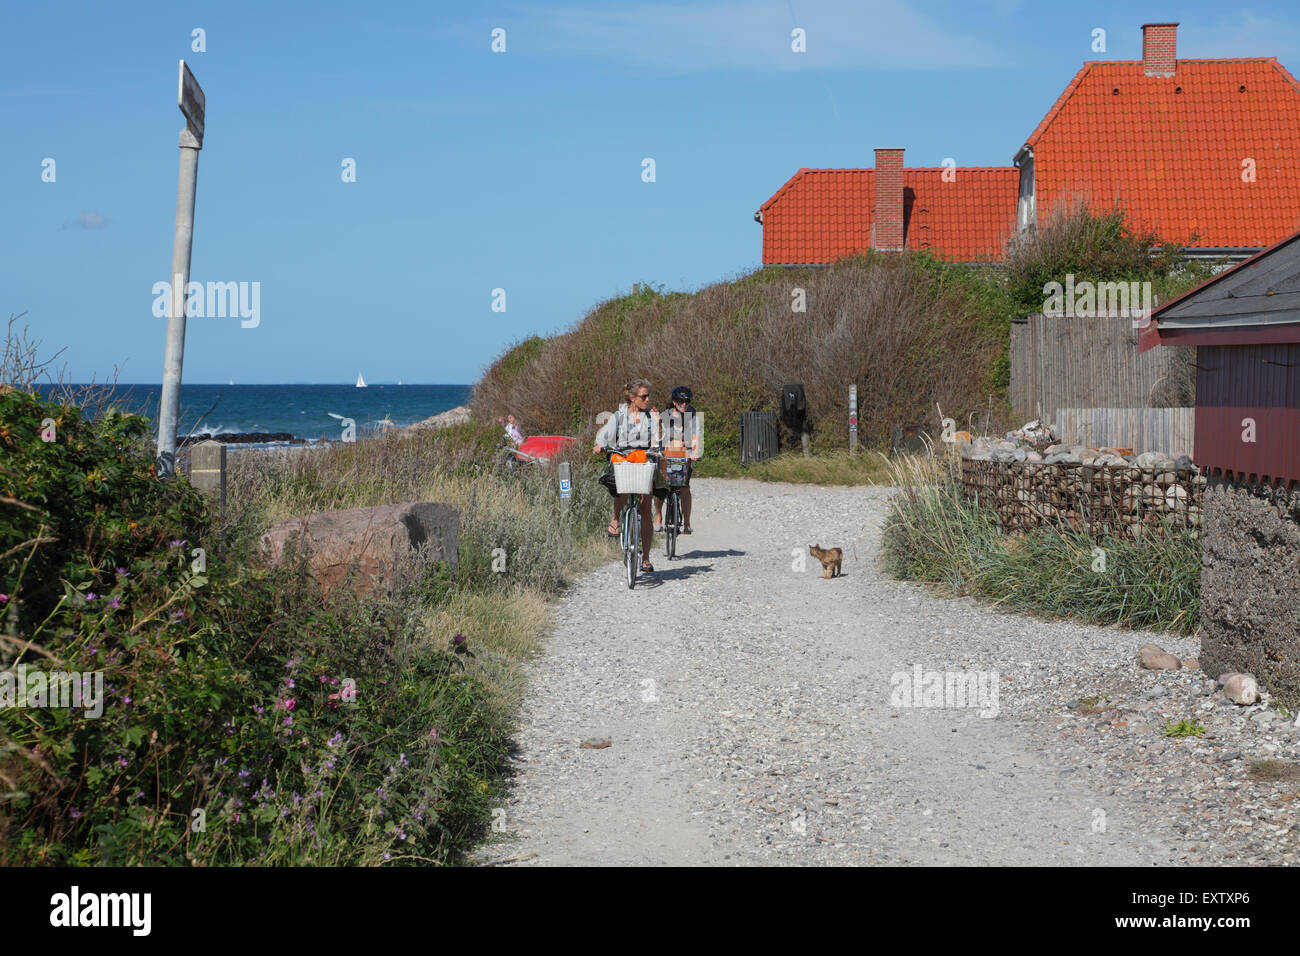 A path along the rough Kattegat coast in Kikhavn, a fishing hamlet with a warm and cosy atmosphere 2 km east of - Stock Image